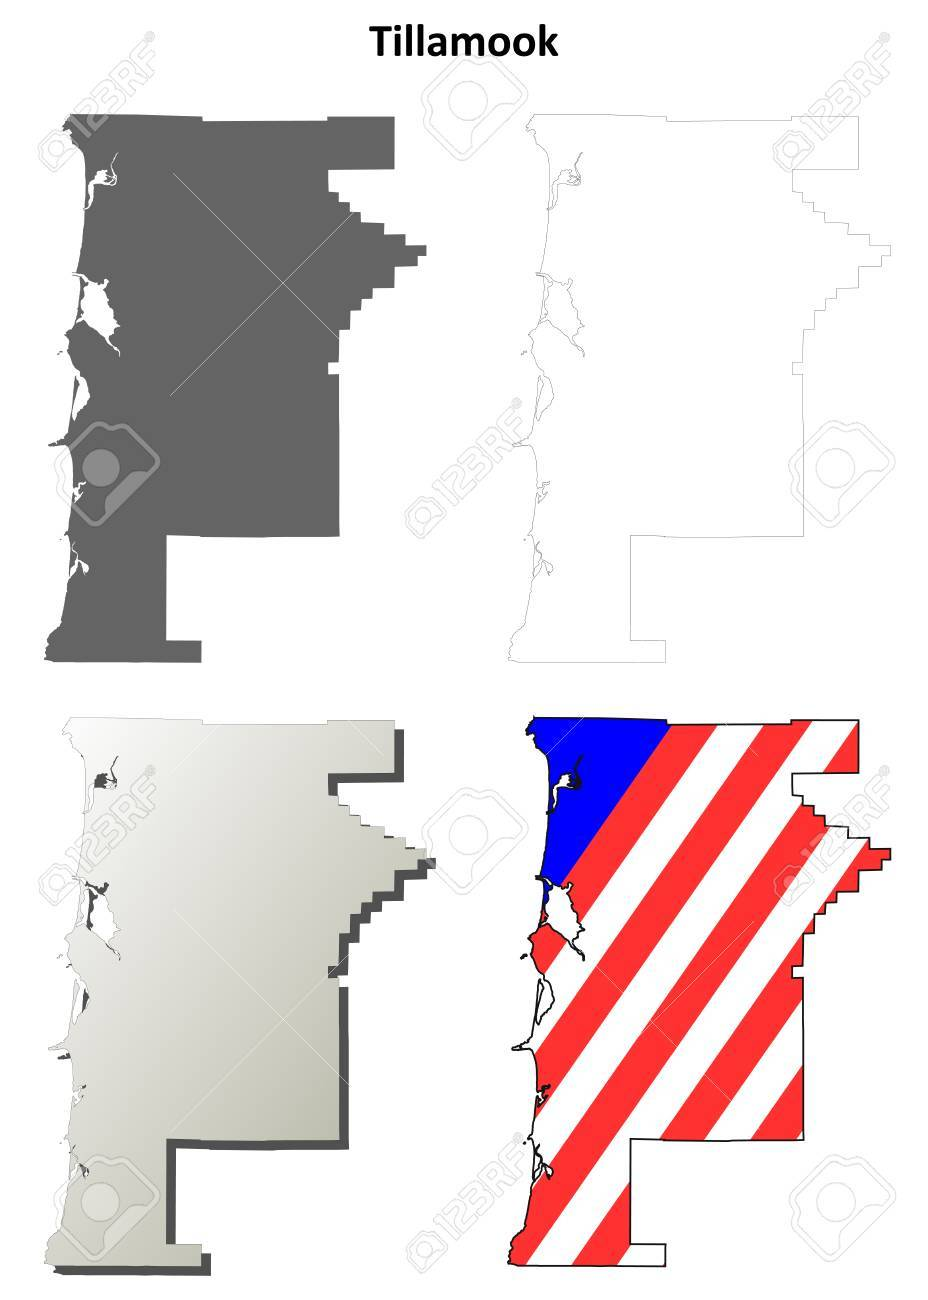 Tillamook County Oregon Blank Outline Map Set Royalty Free Cliparts